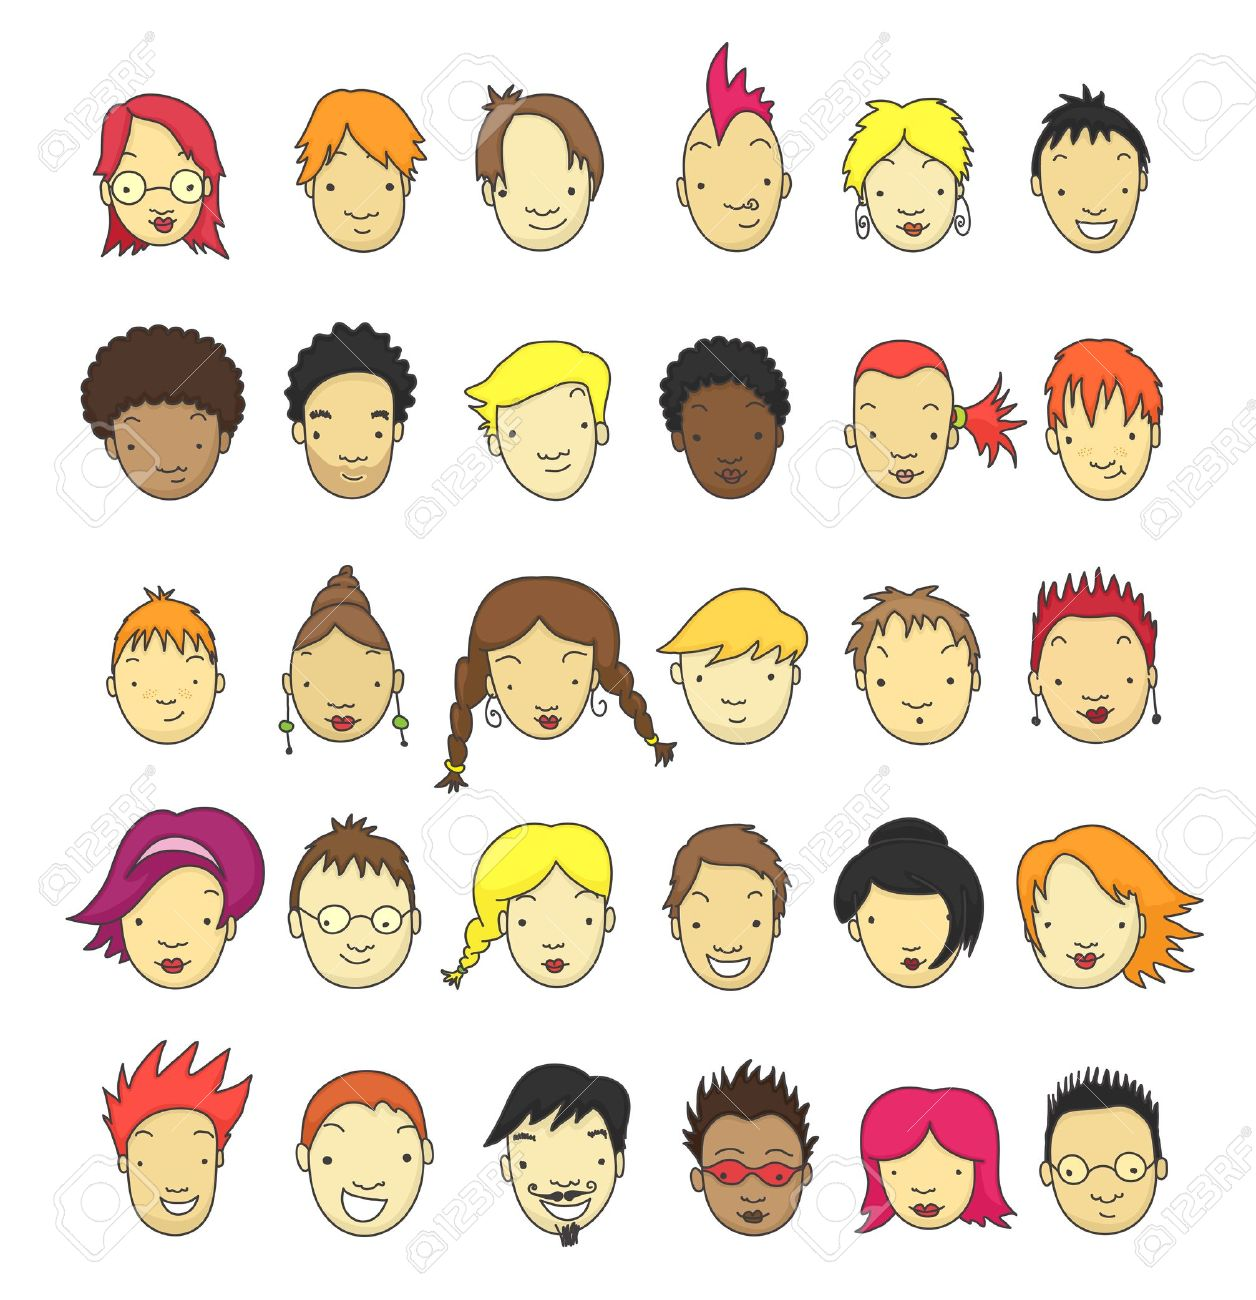 Set of 30 different cartoon faces for avatar. Stock Vector - 10957607